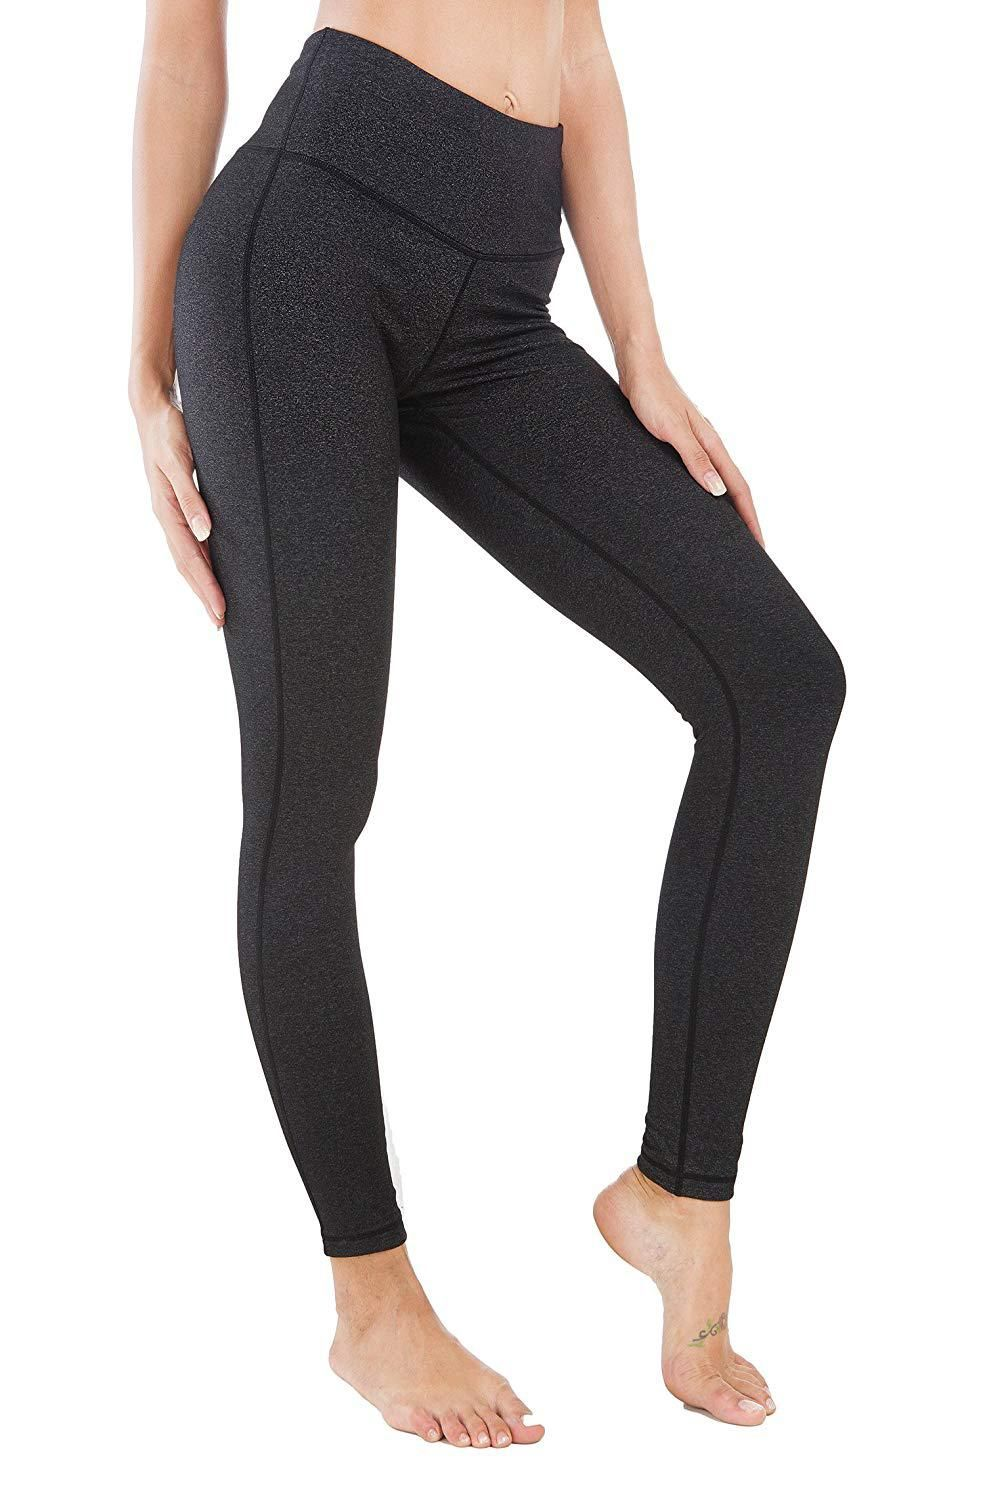 0709b79af2f14 Queenie Ke Women Power Flex Yoga Pants Workout Running Leggings Clothing --  Amazon Affiliate link. Click image for detail -- #queenie #ke #women #power  ...